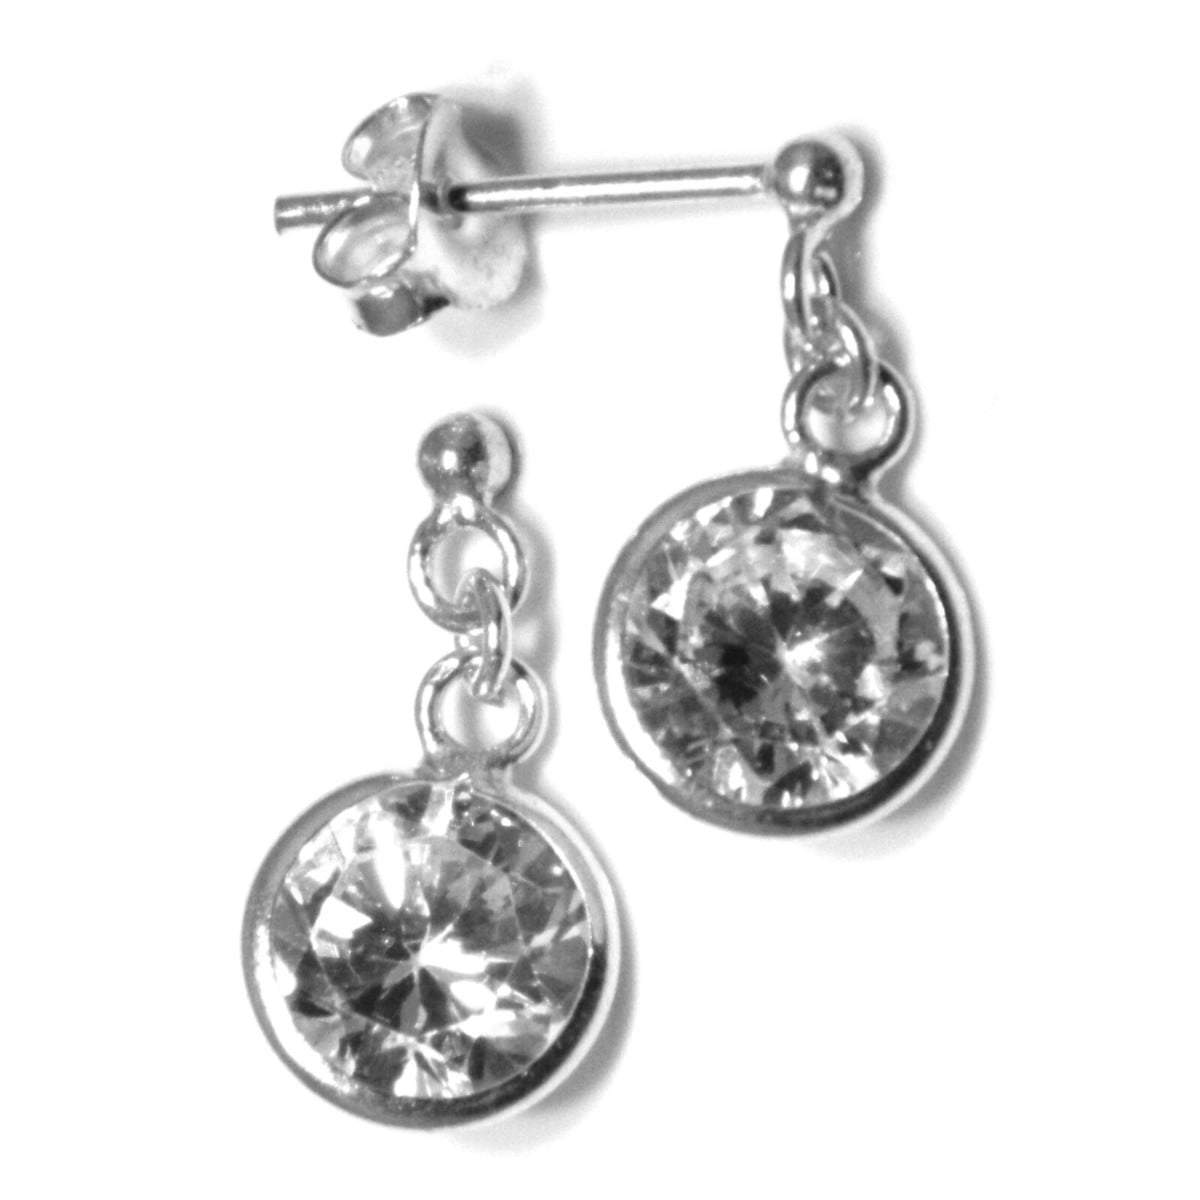 7 mm round CZ drop earrings in sterling silver